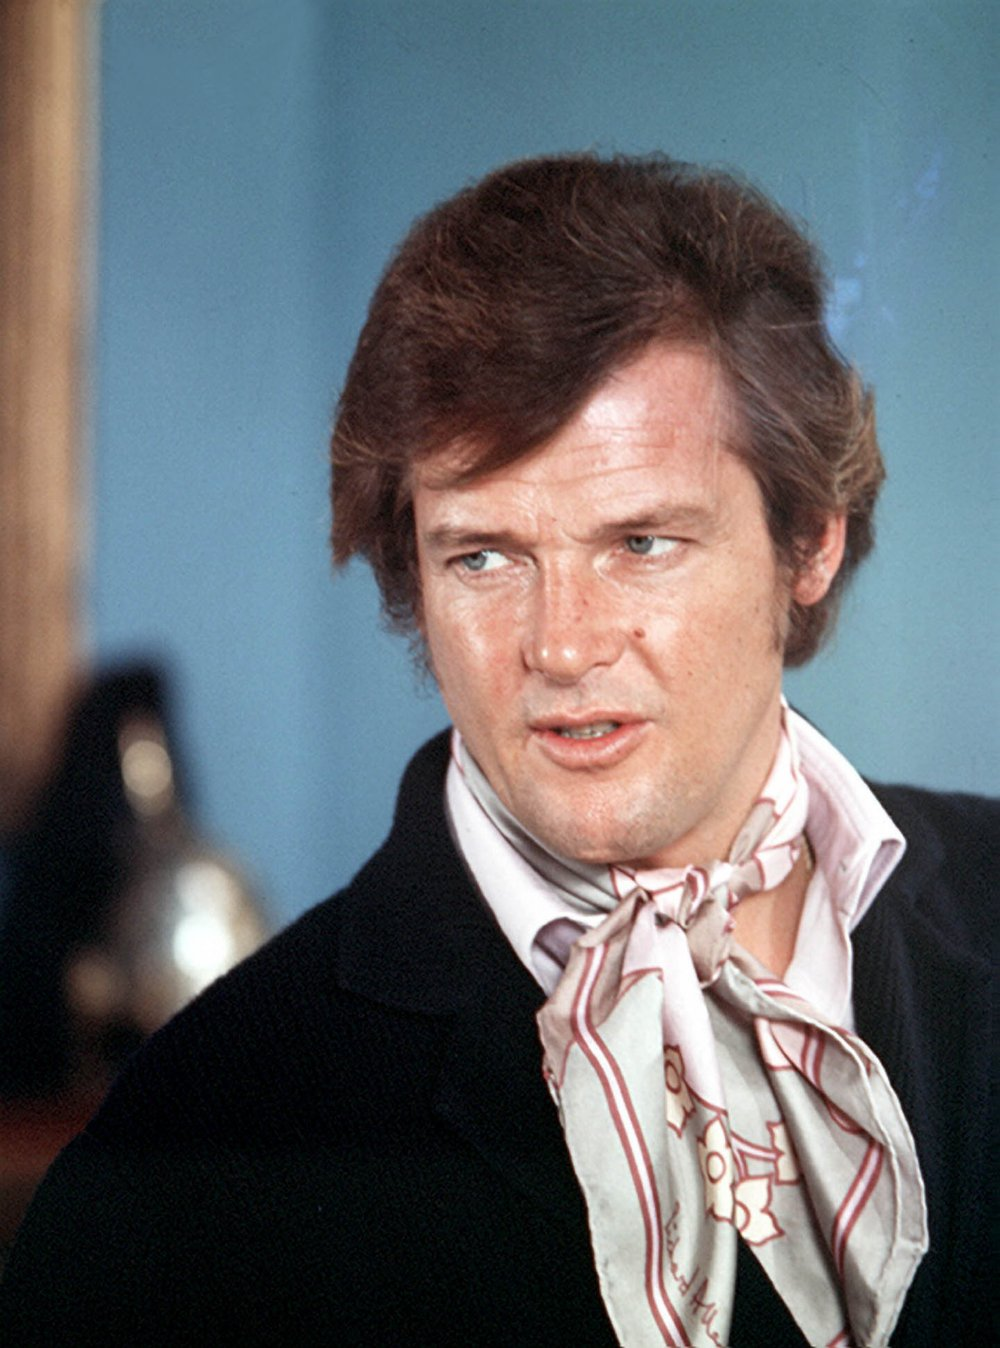 Roger Moore, who has died aged 89